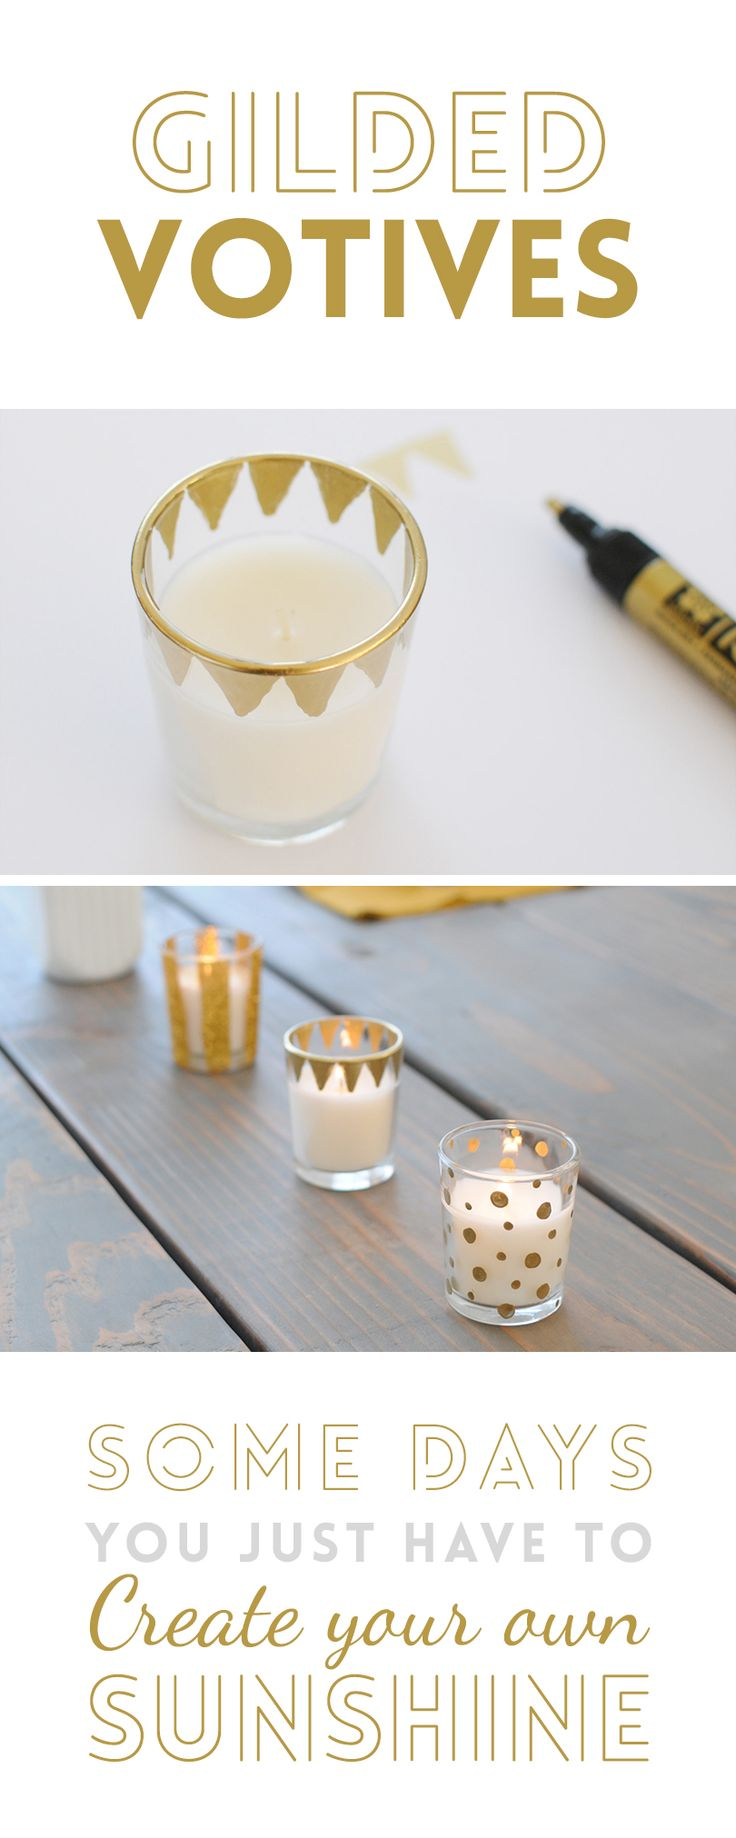 Gilded Votives [Click through for details on how to save $10 off this DIY kit!]